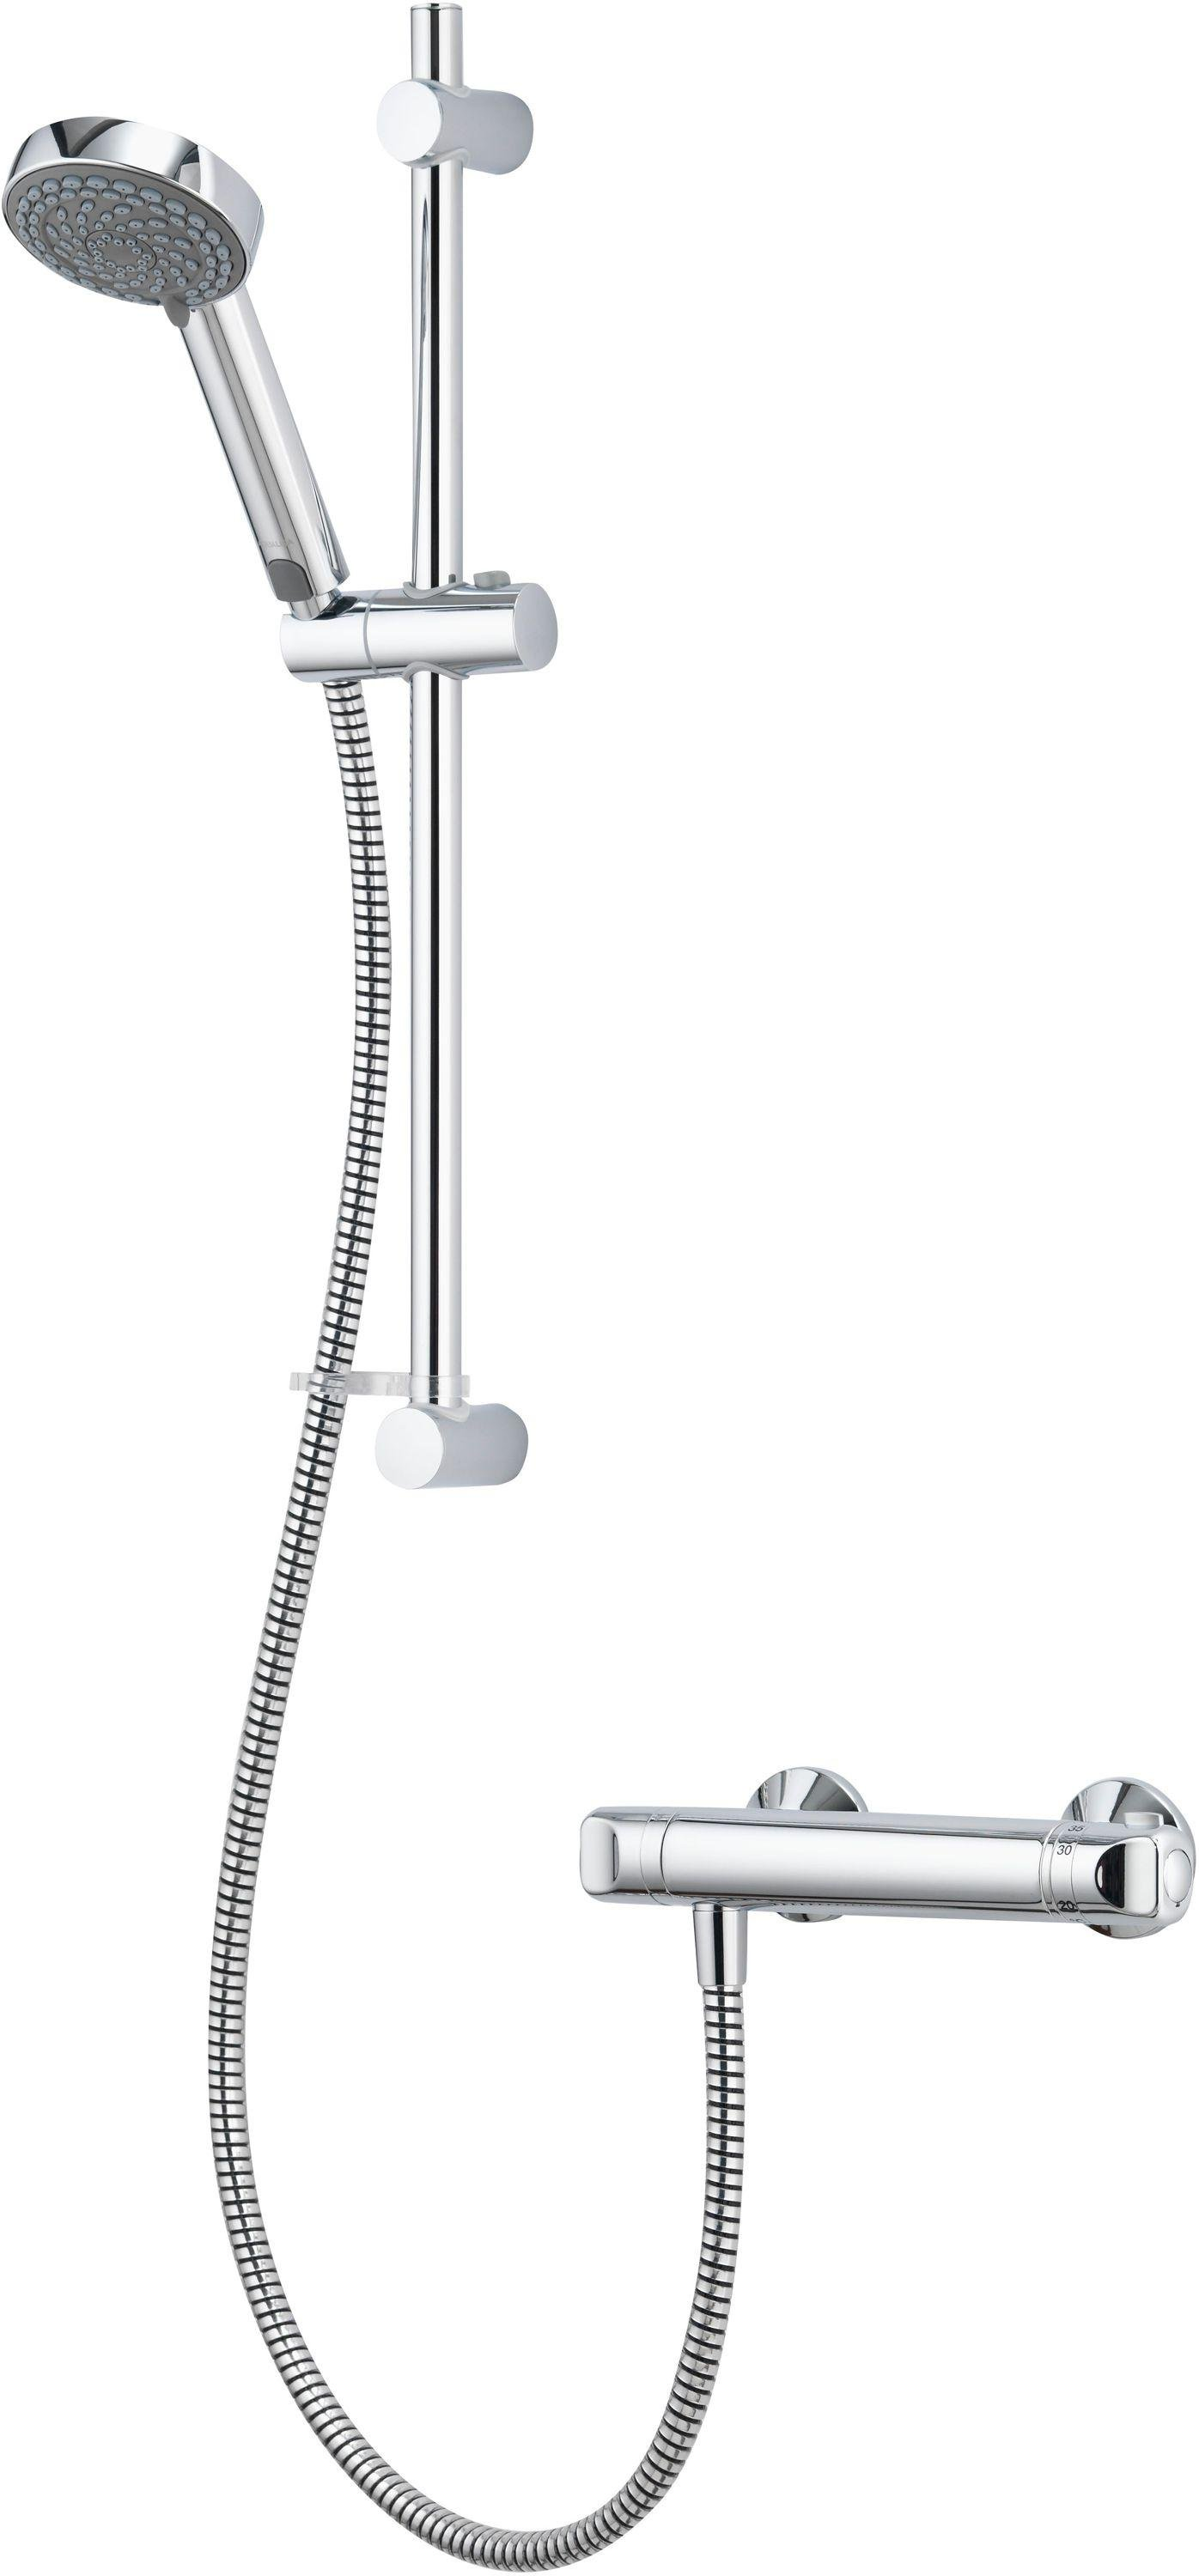 Aqualisa AQ300 Mixer Shower.